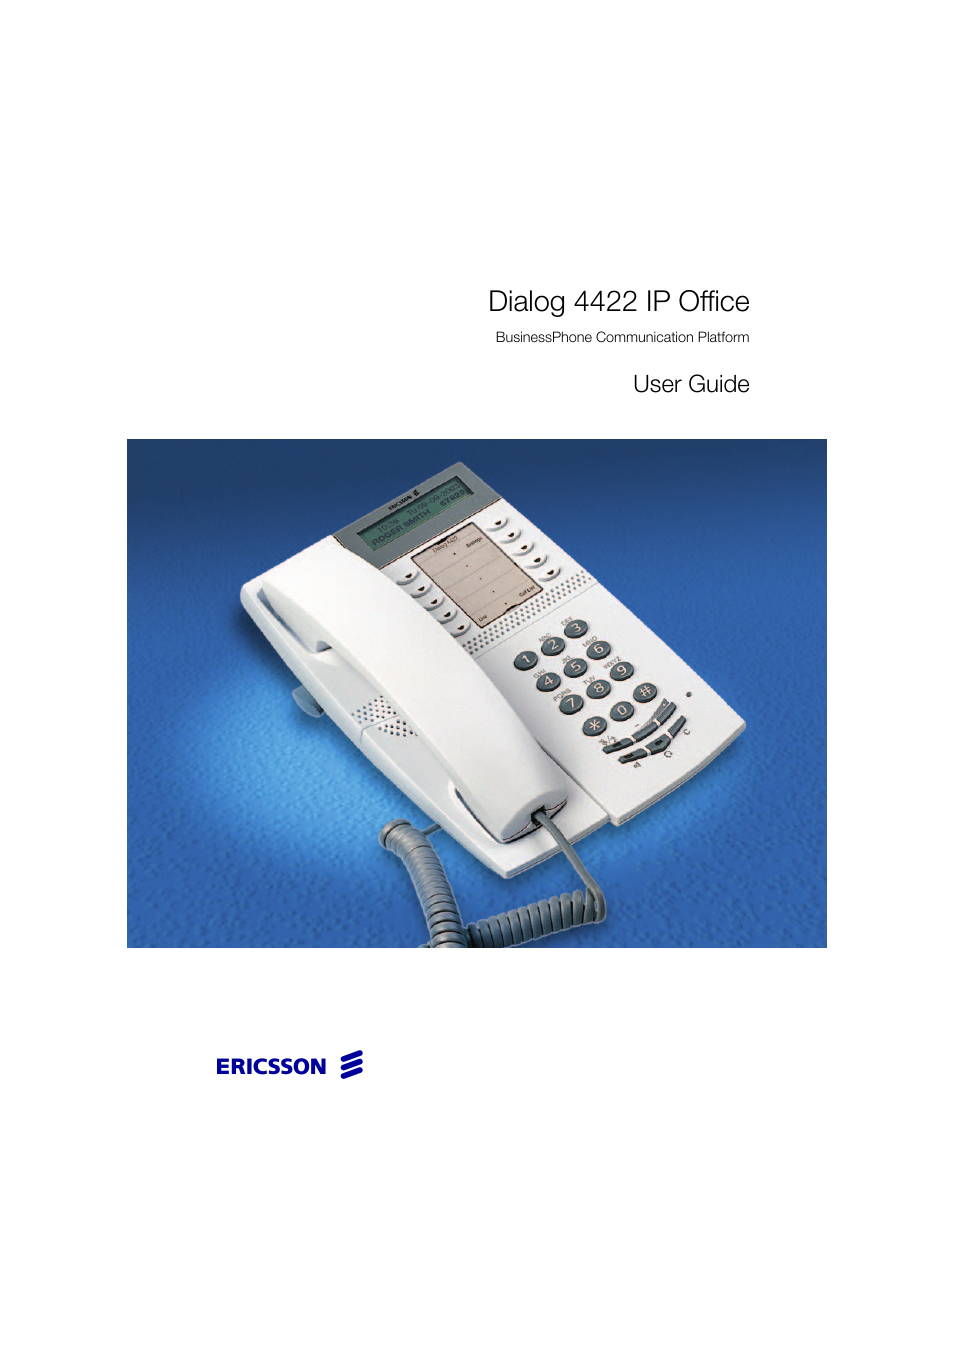 ericsson 4422 user manual 128 pages rh manualsdir com ericsson dialog 4422 ip office user manual ericsson dialog 4422 ip office user manual